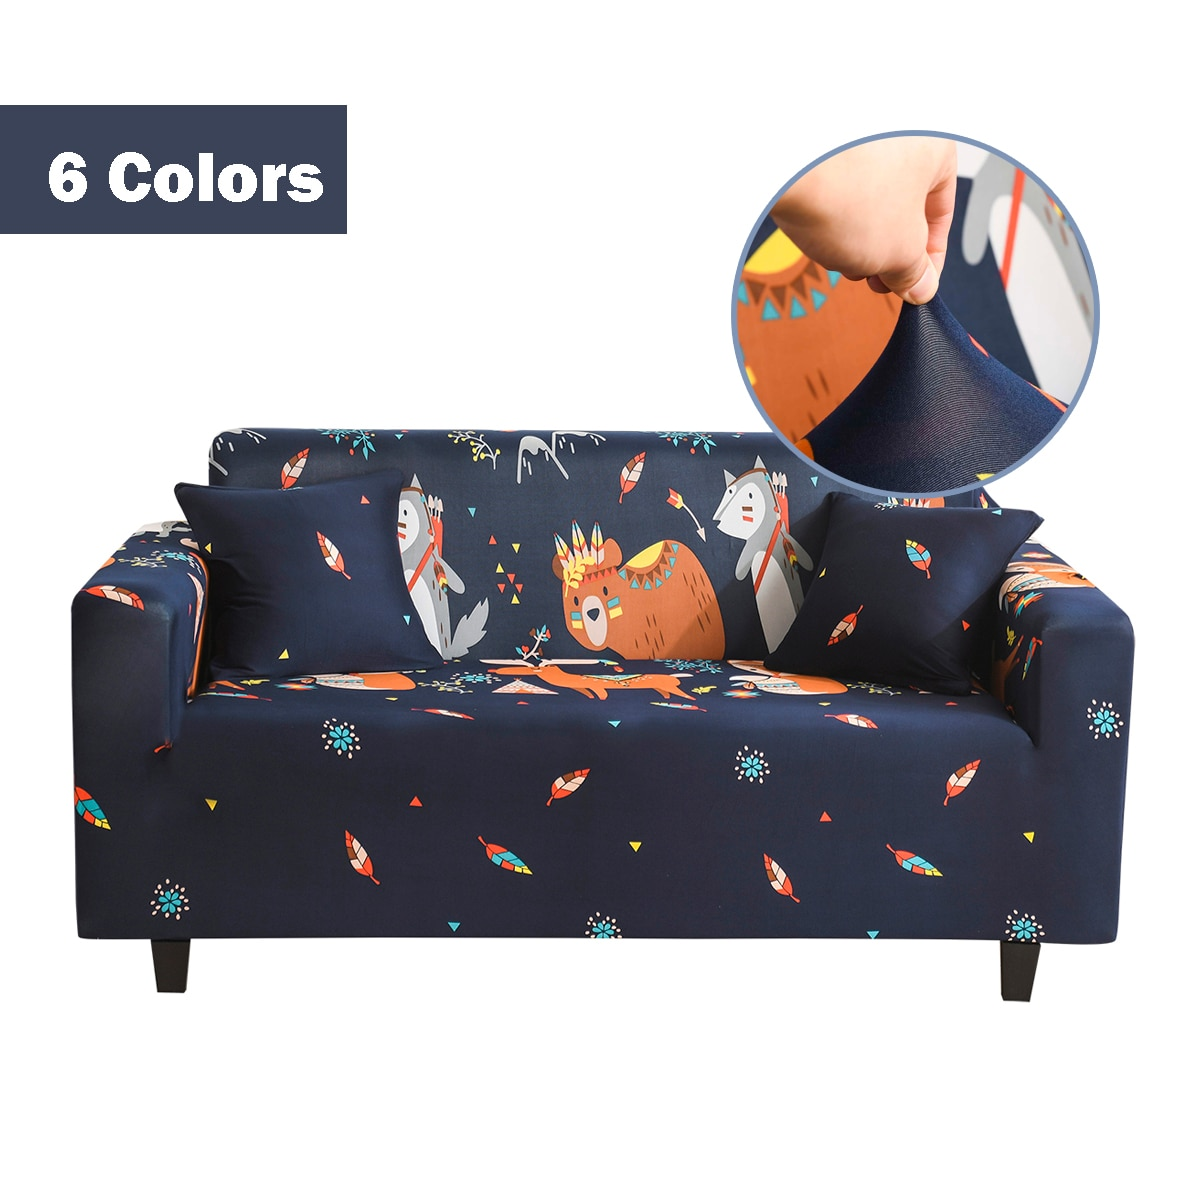 1 2pcs elastic sofa covers for living room l shape sectional slipcovers strench armchair couch covers 1 2 3 4 seater funda cover Cartoon Sofa Covers for Living Room Elastic Couch Covers for Sofas Sectional Slipcover L Shape Sofa Cover Protector 1/2/3/4 Seat